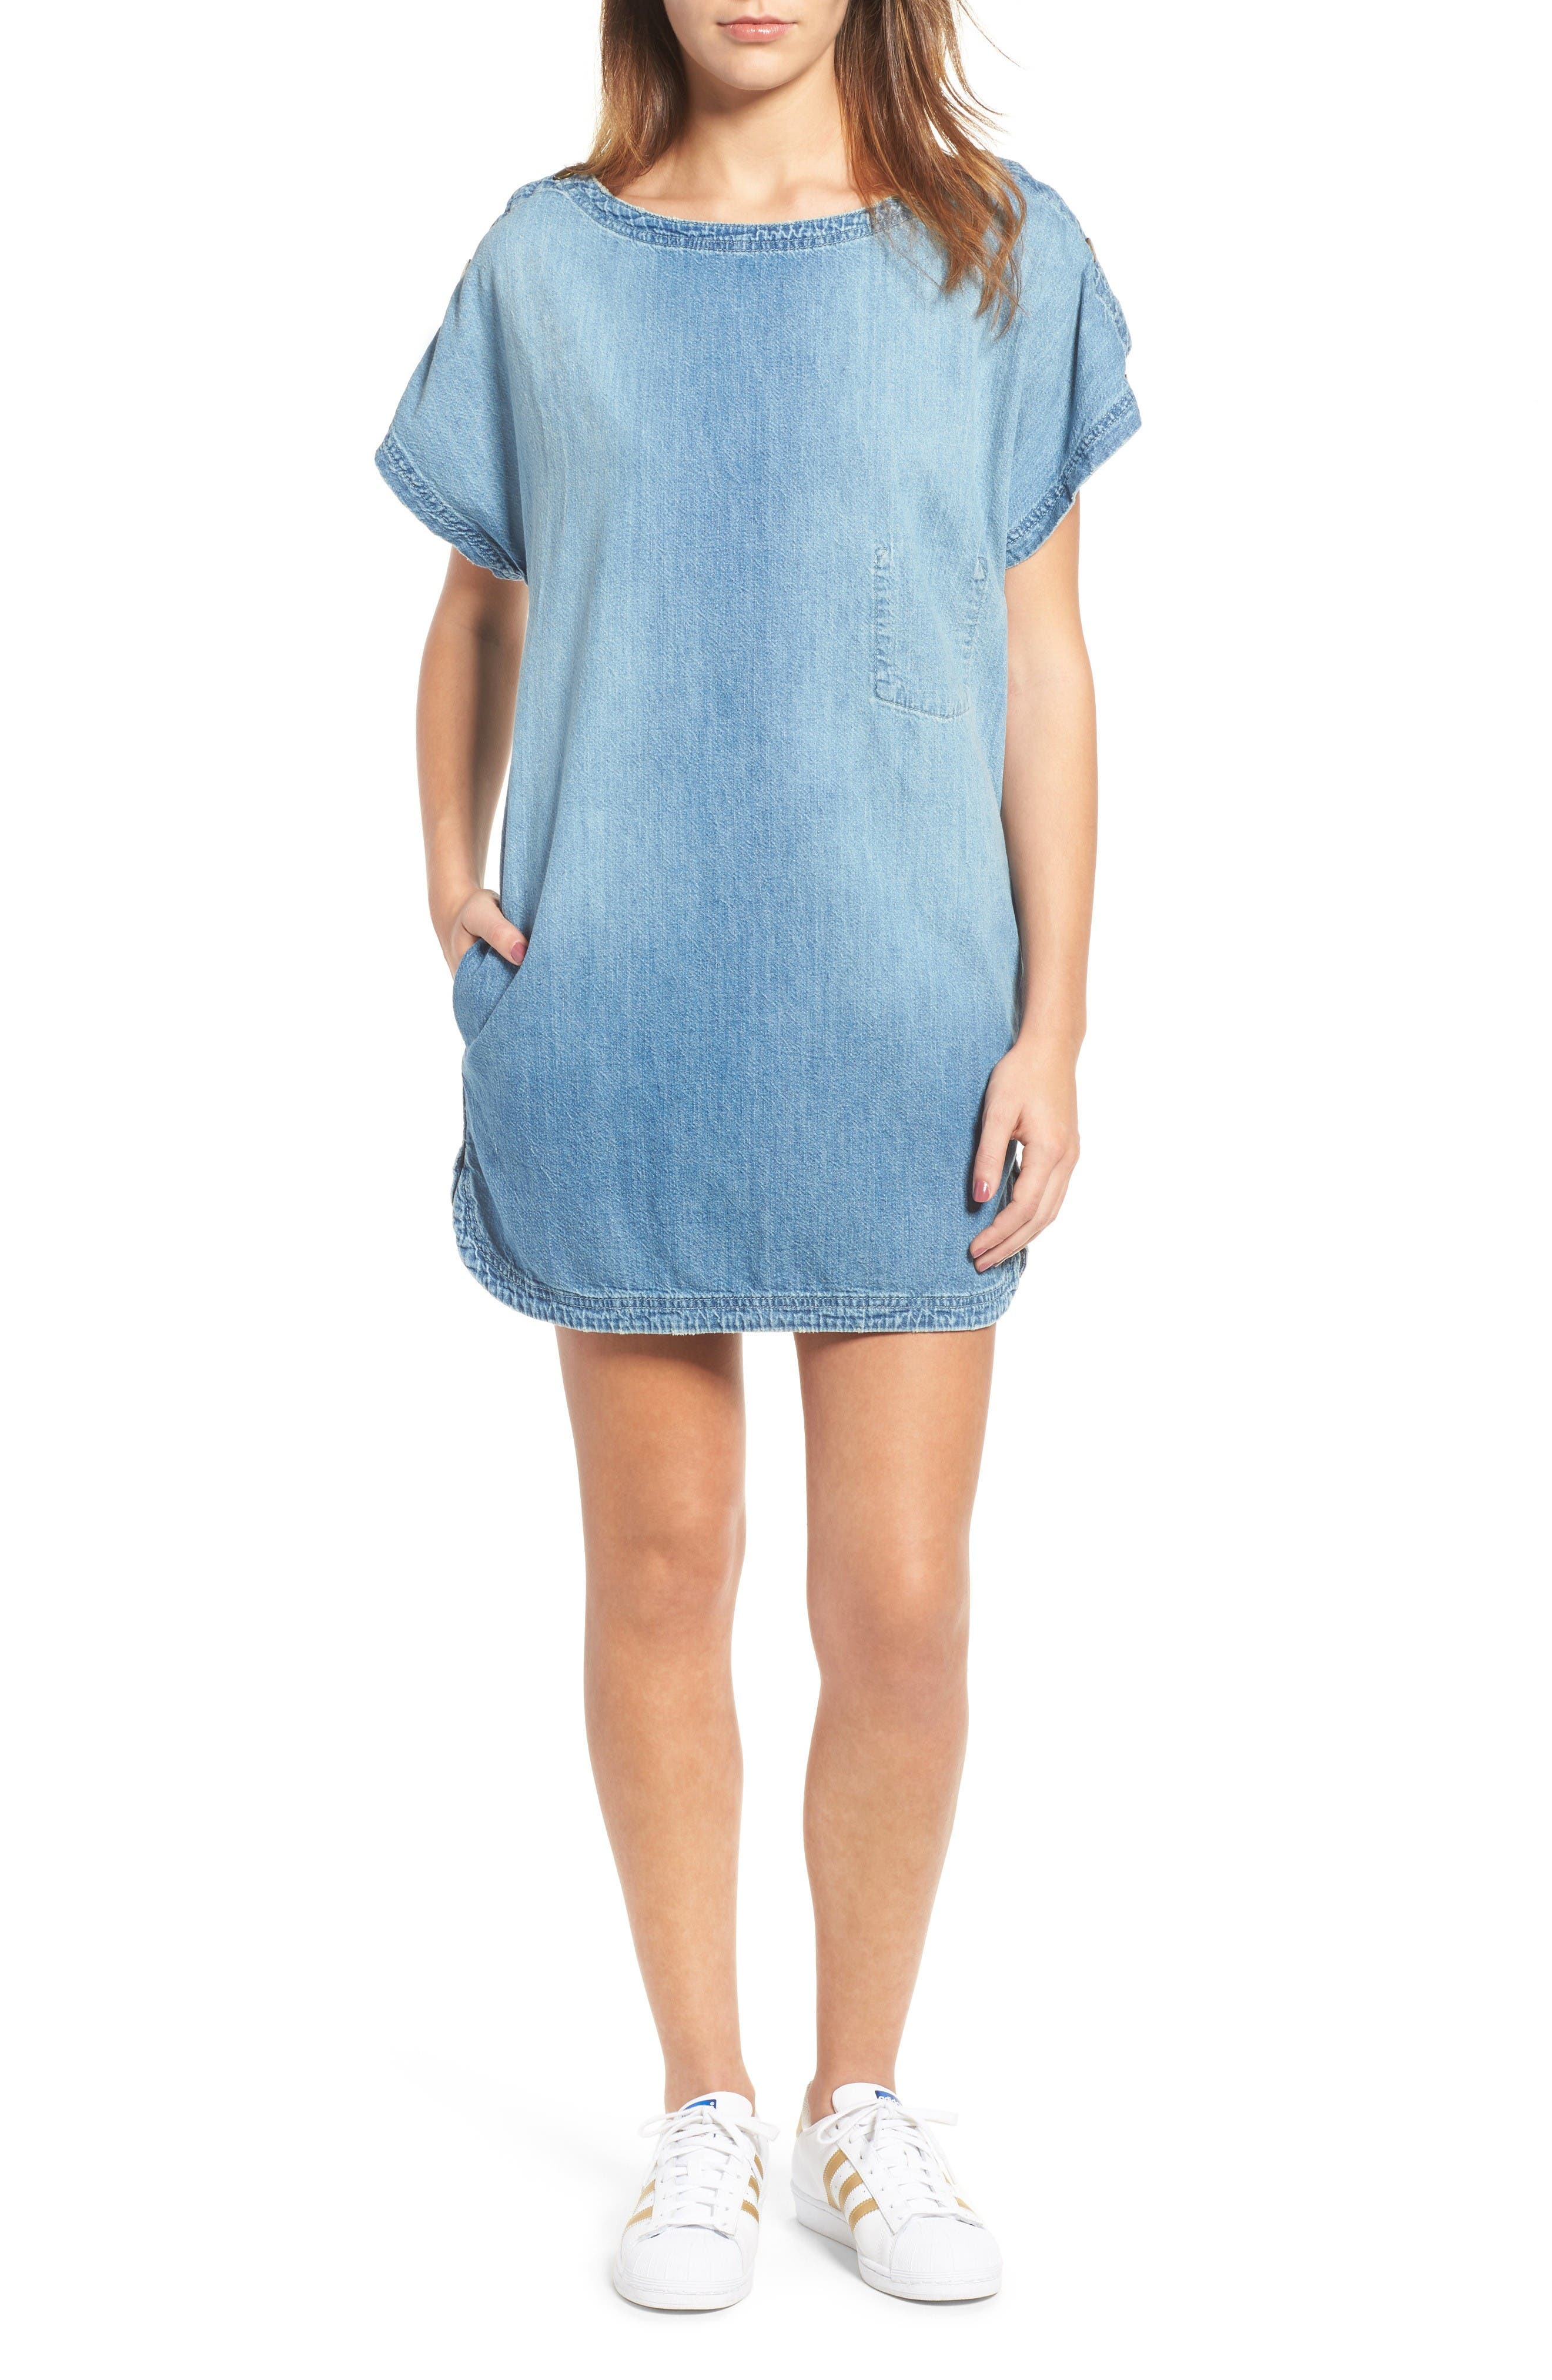 Alternate Image 1 Selected - Current/Elliott Denim T-Shirt Dress